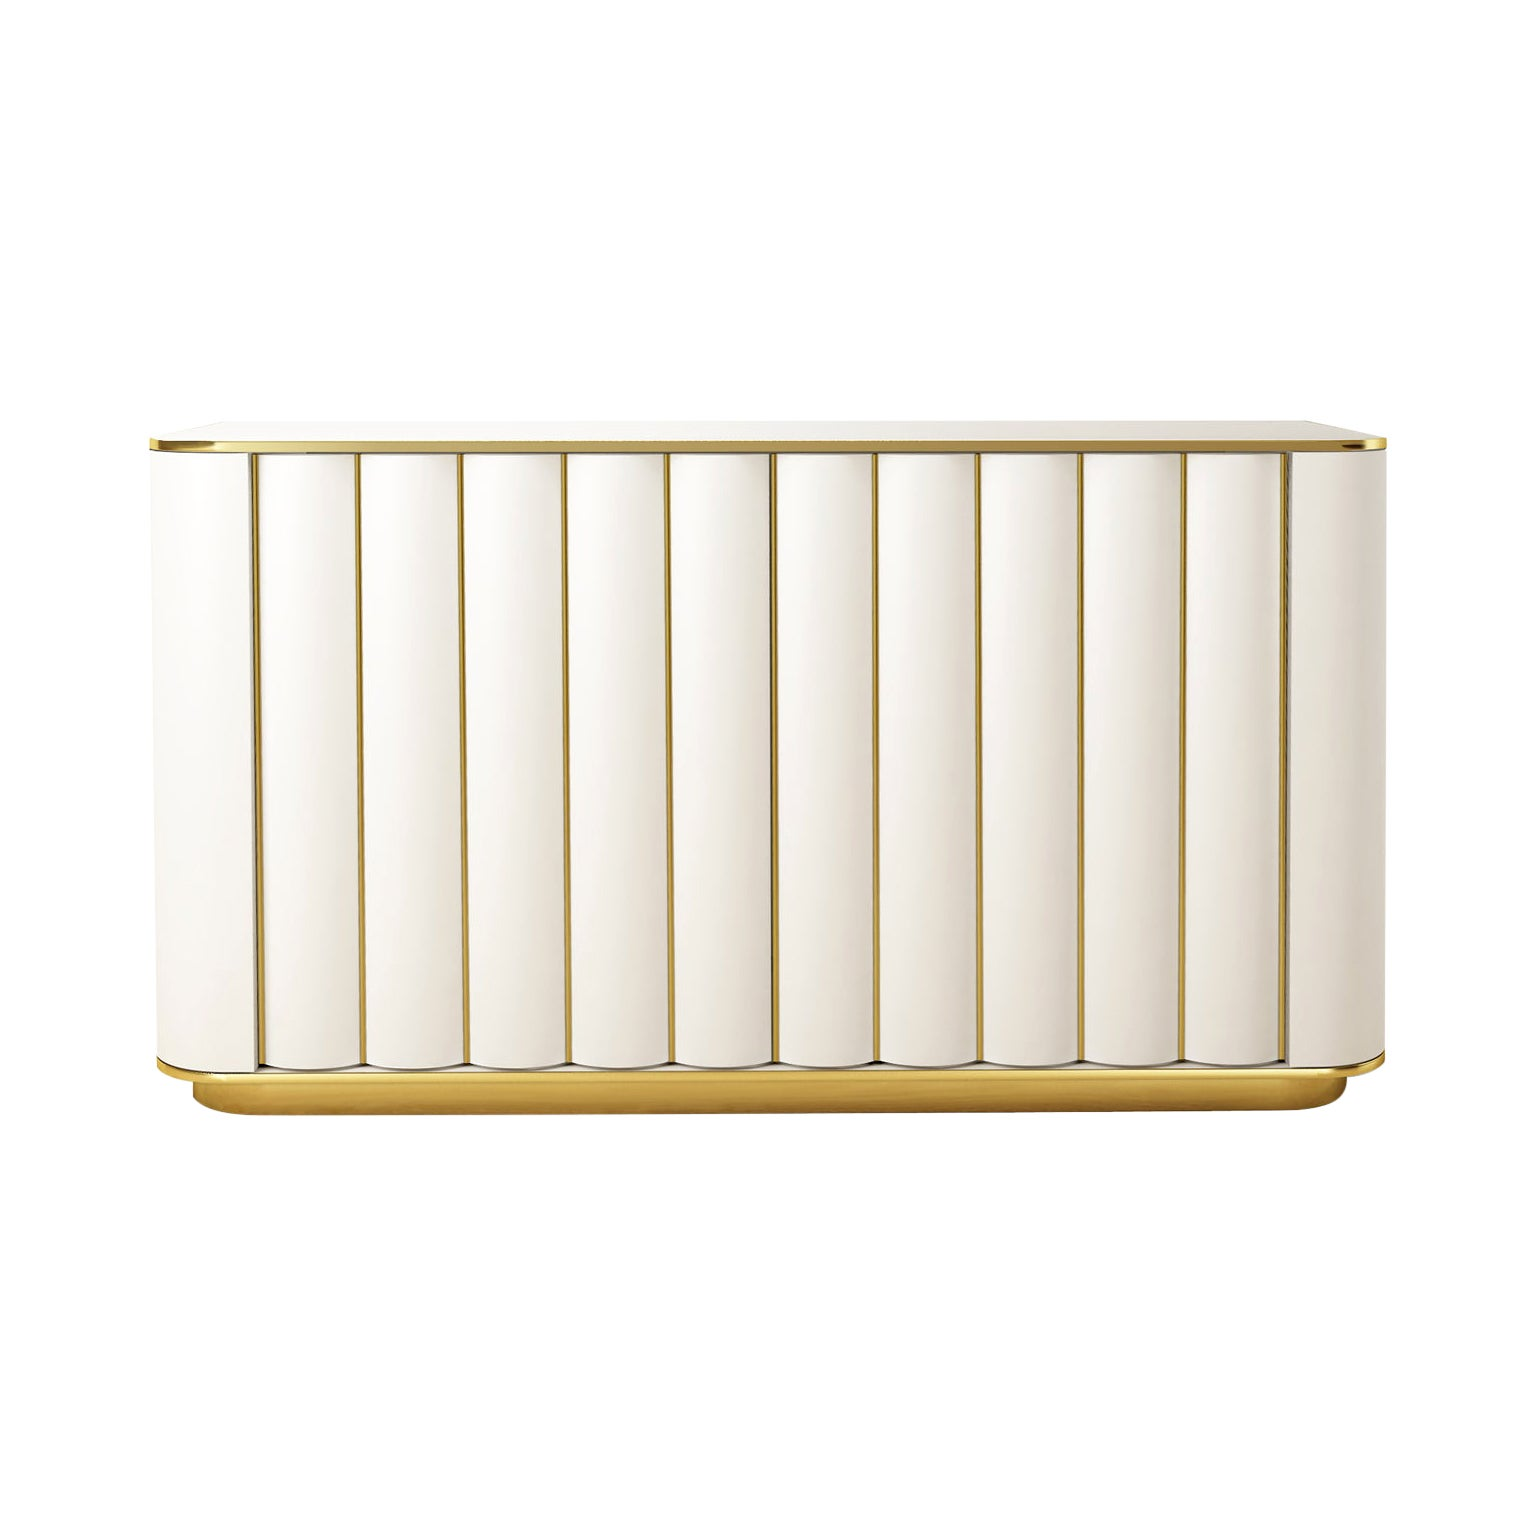 Isabella Costantini, Italy, Duilio Dresser with Polished Brass